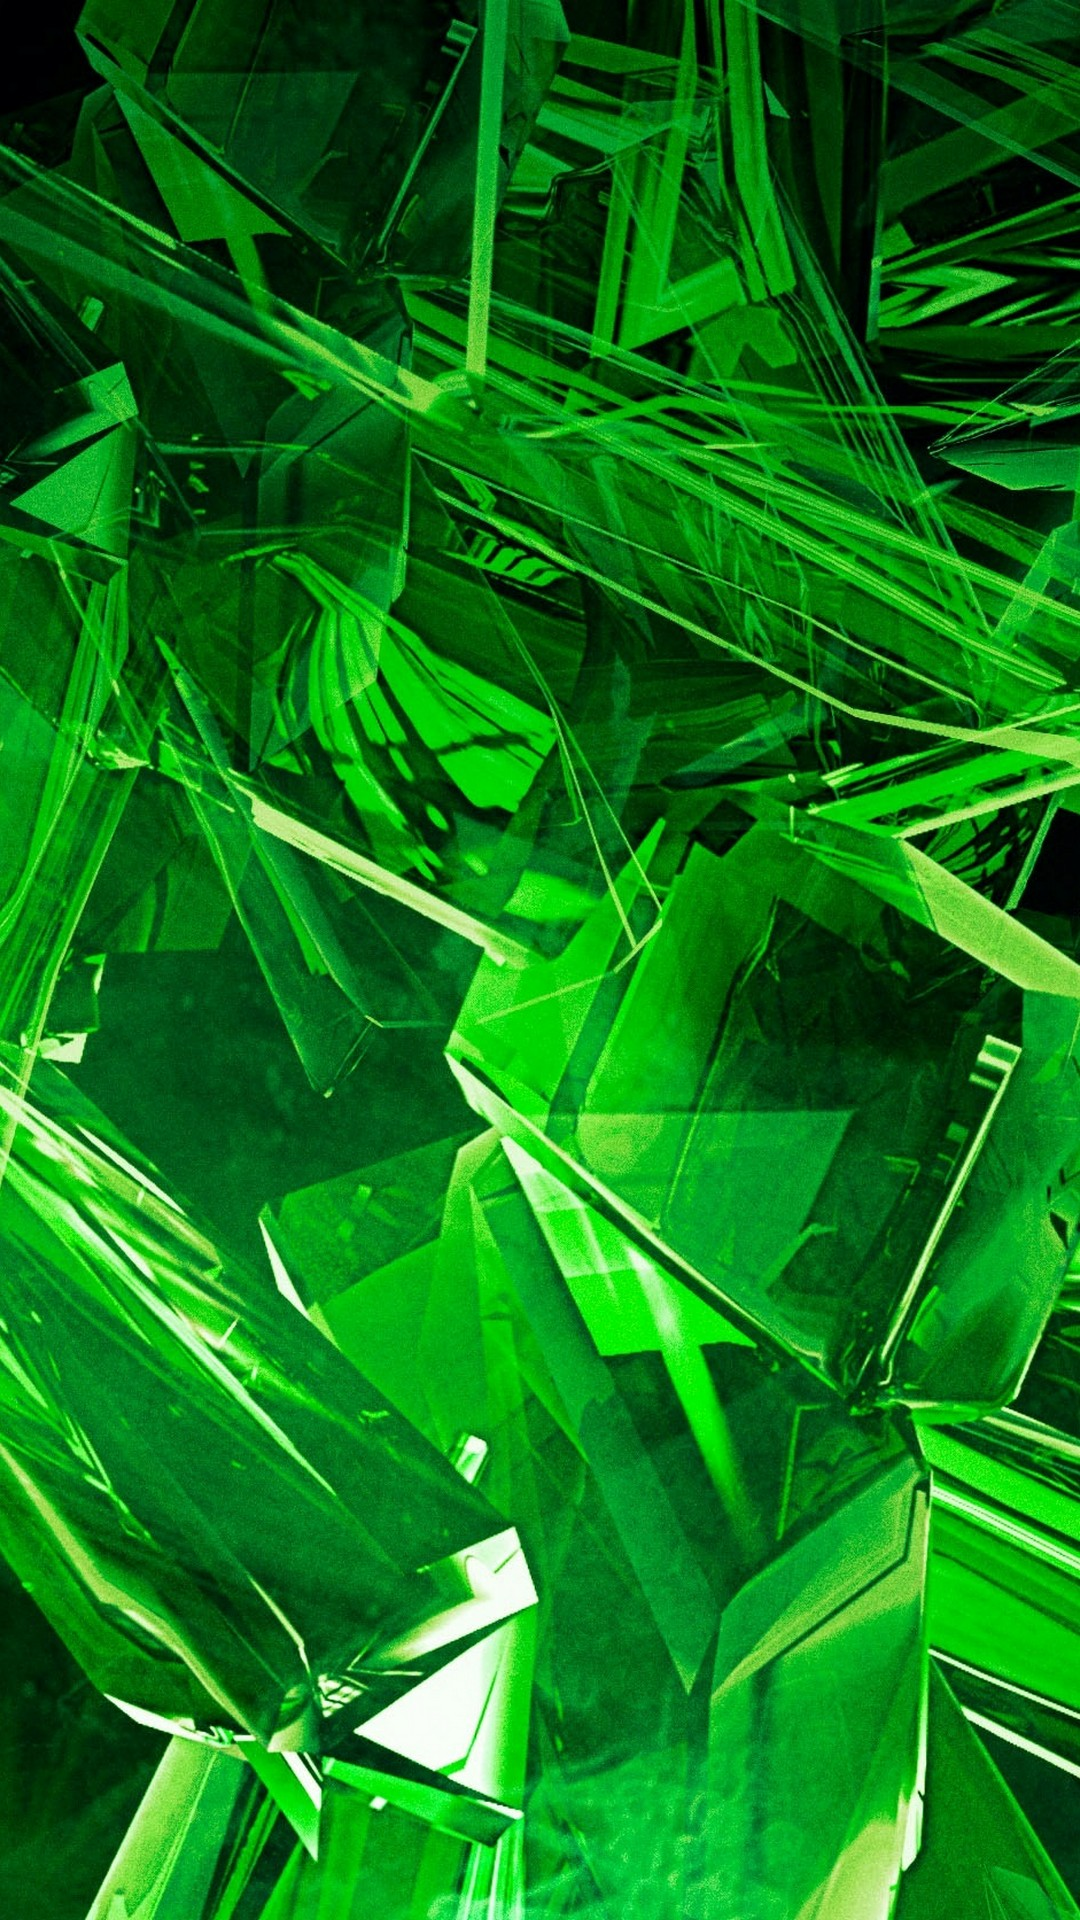 Neon Green Wallpaper For Iphone With Image Resolution Cool Green Iphone Backgrounds 2946016 Hd Wallpaper Backgrounds Download